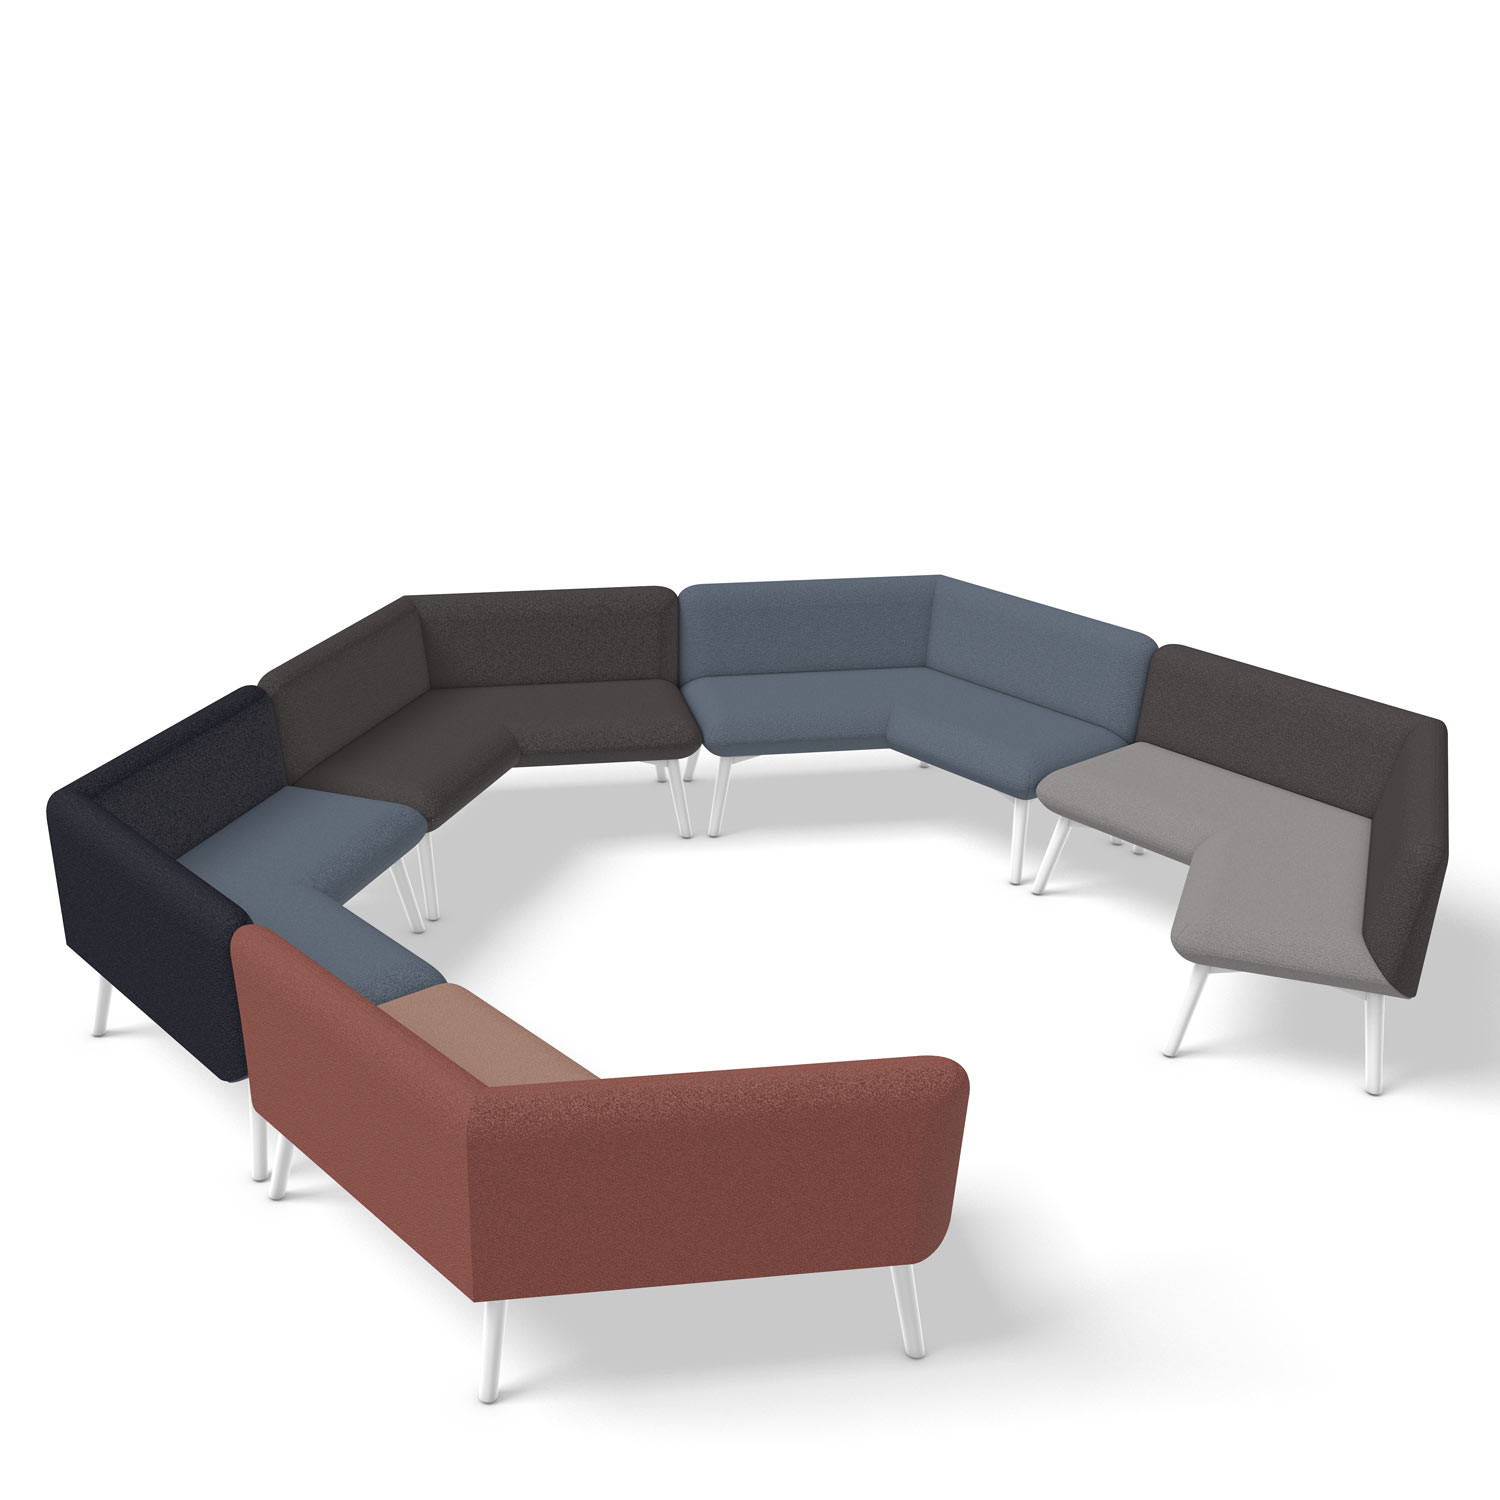 Myriad Hexagon Sofa Configuration